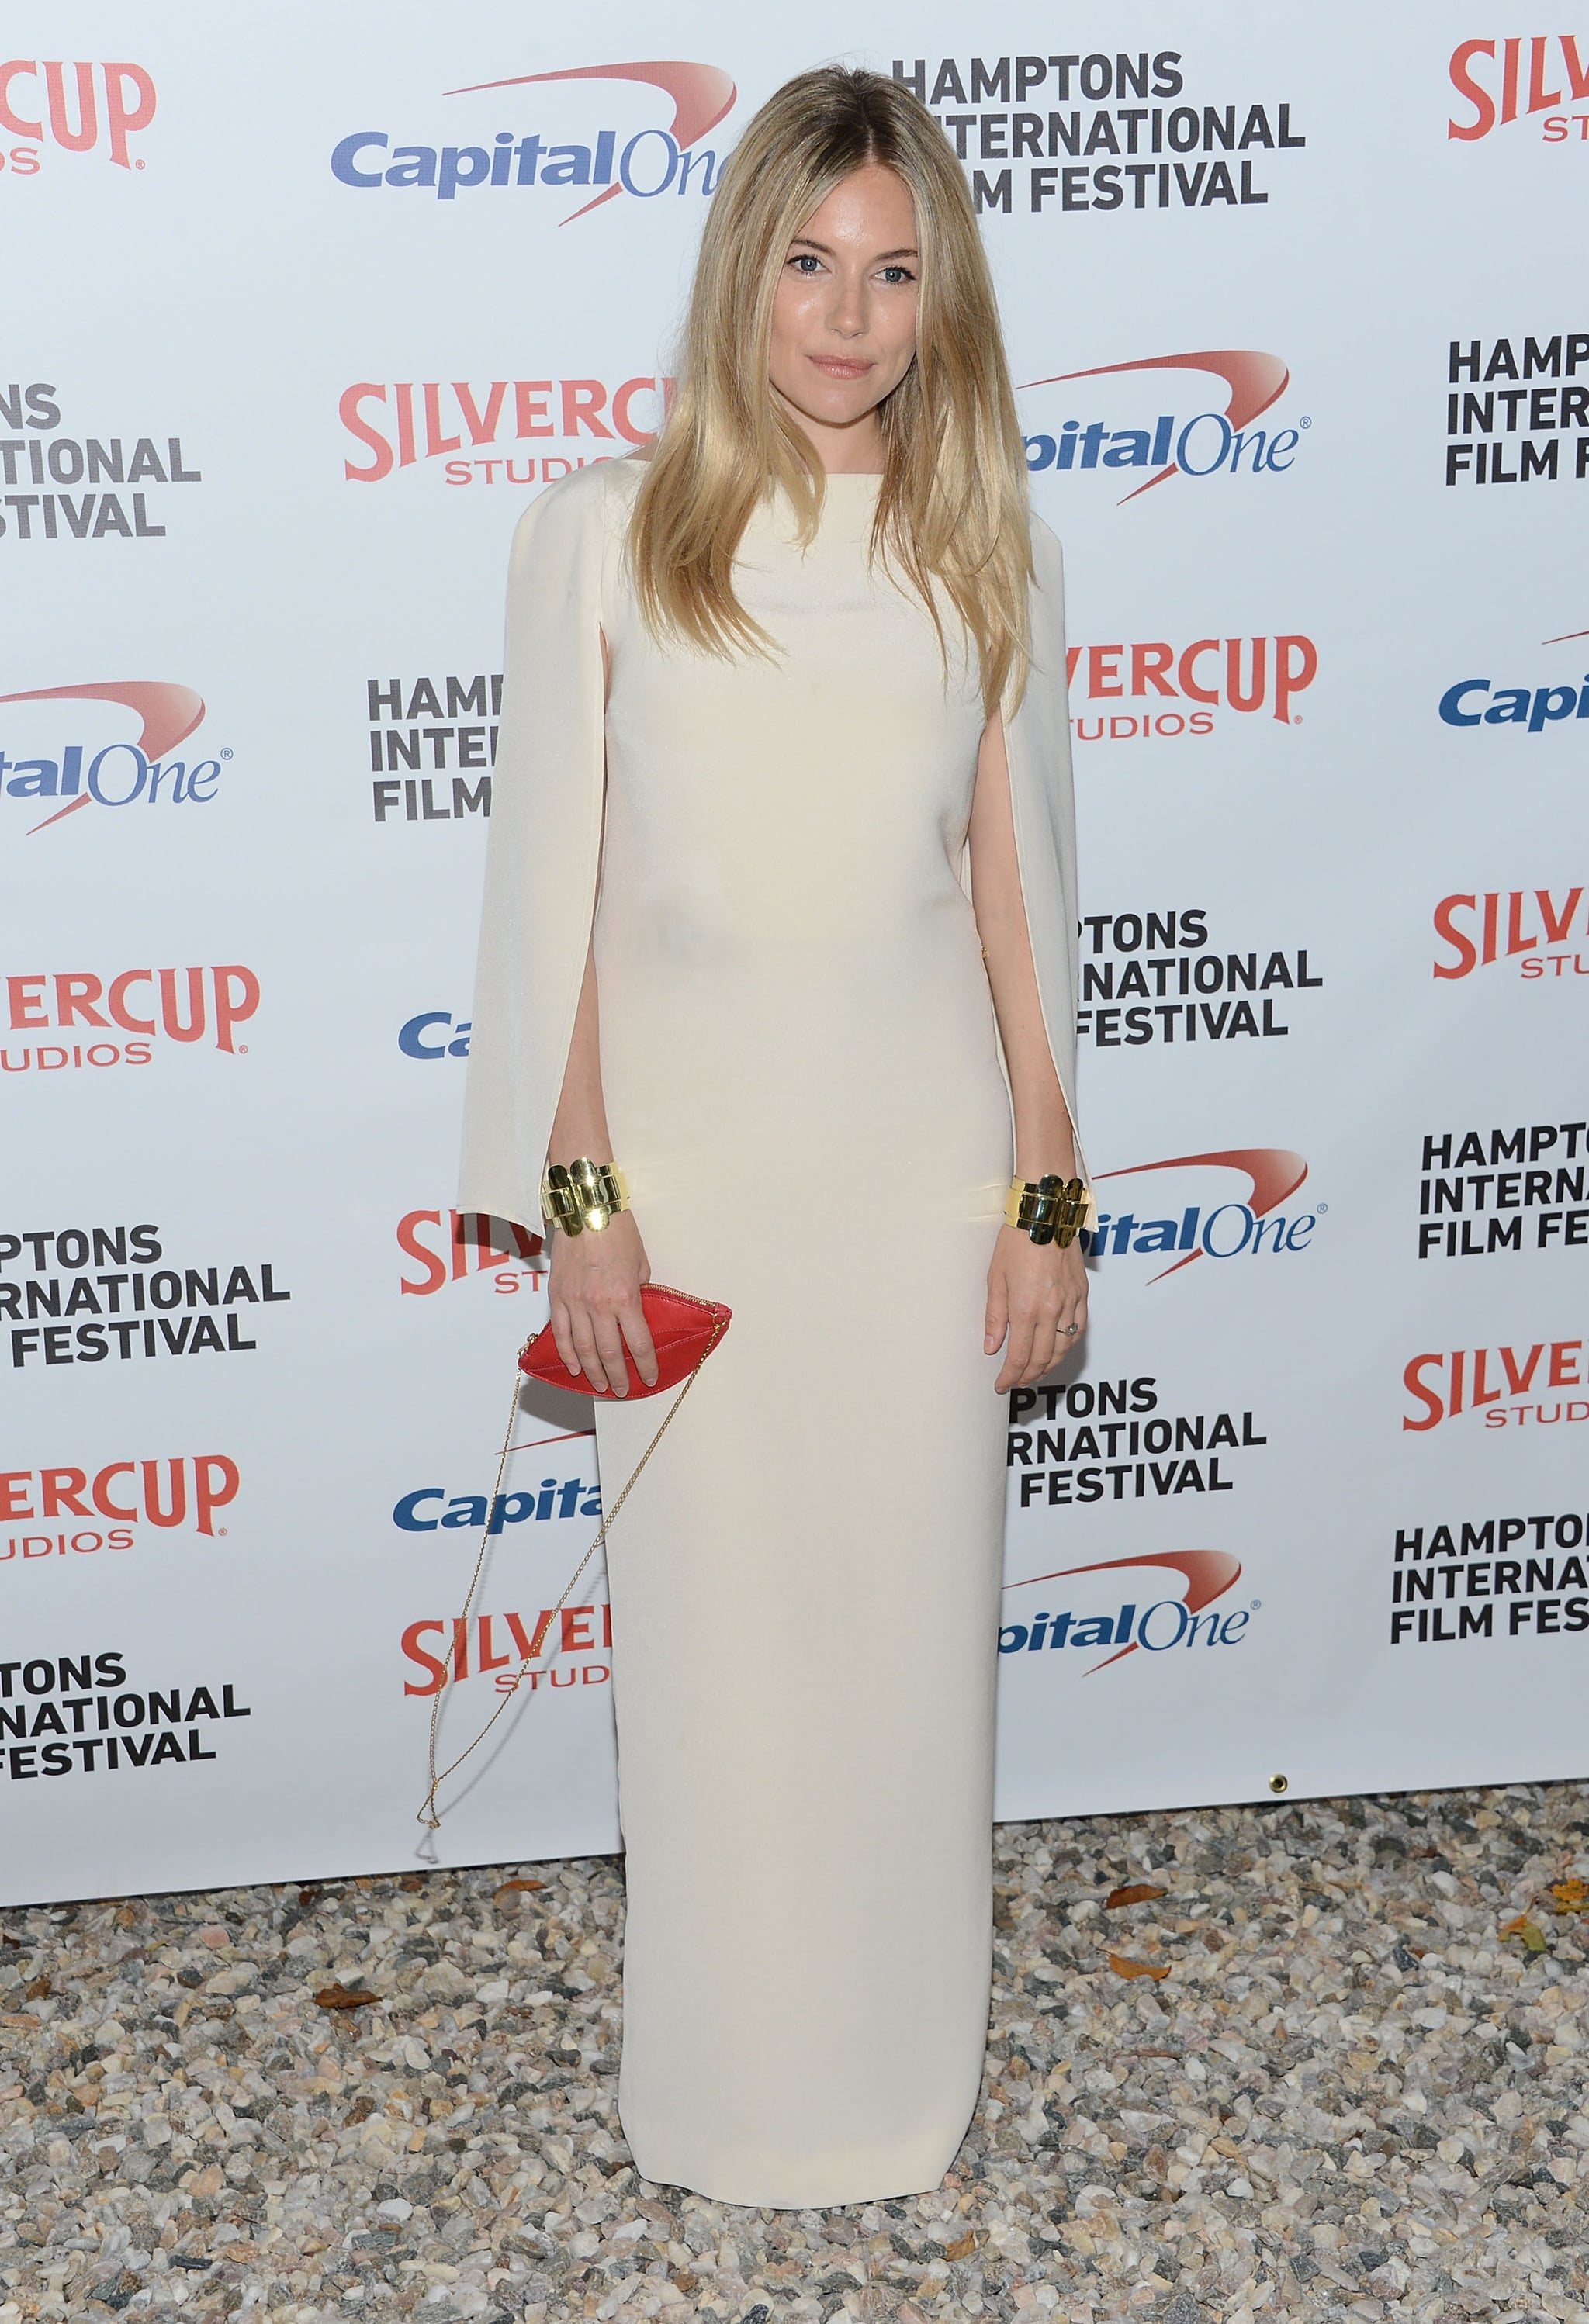 A sleek and glamorous Sienna wore a white Alessandra Rich dress to the 20th Hamptons International Film Festival in October 2012.